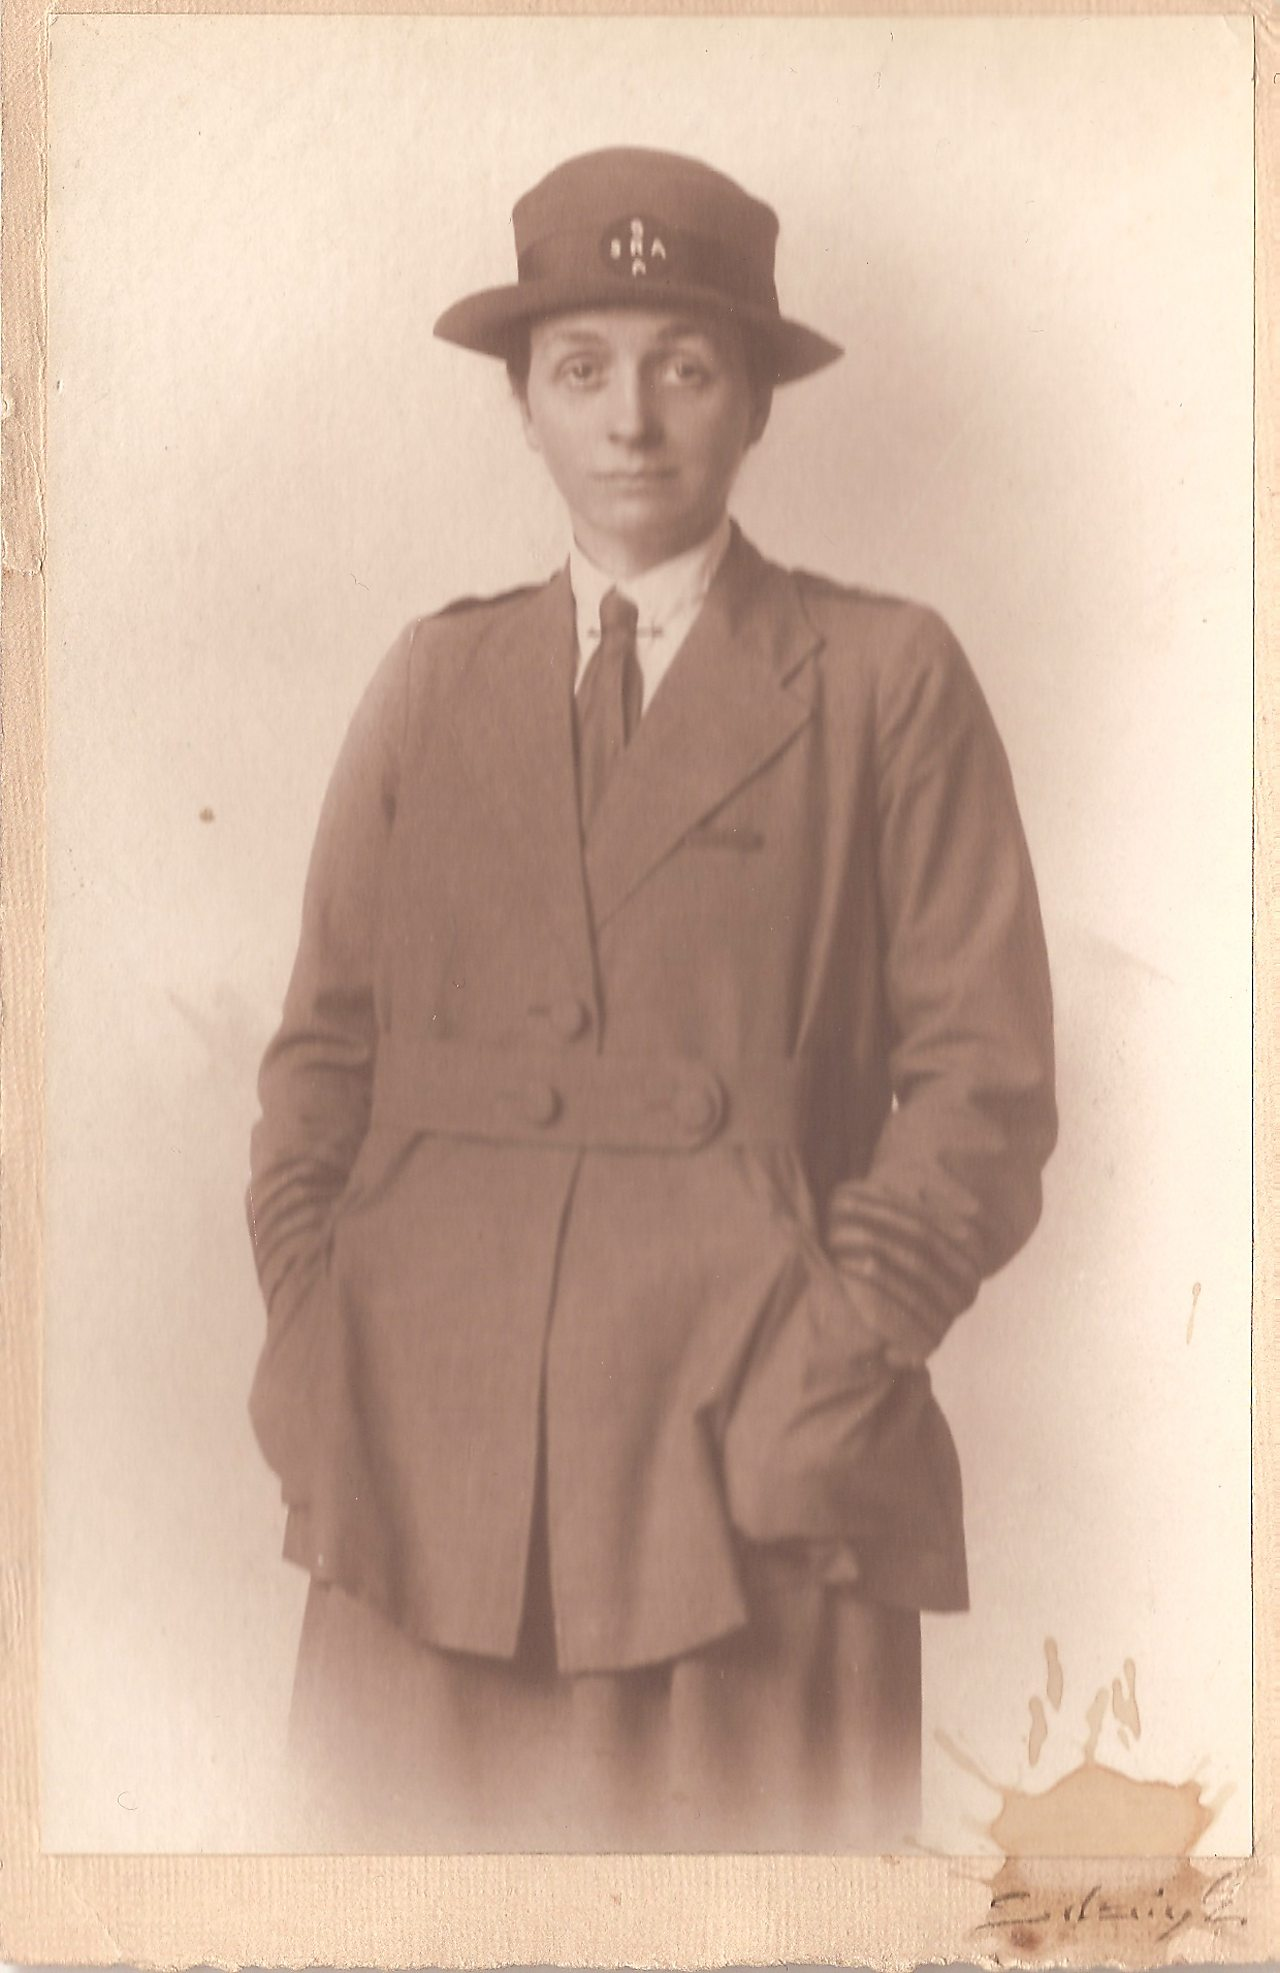 Photograph of Anne Crawford Acheson in SRA uniform